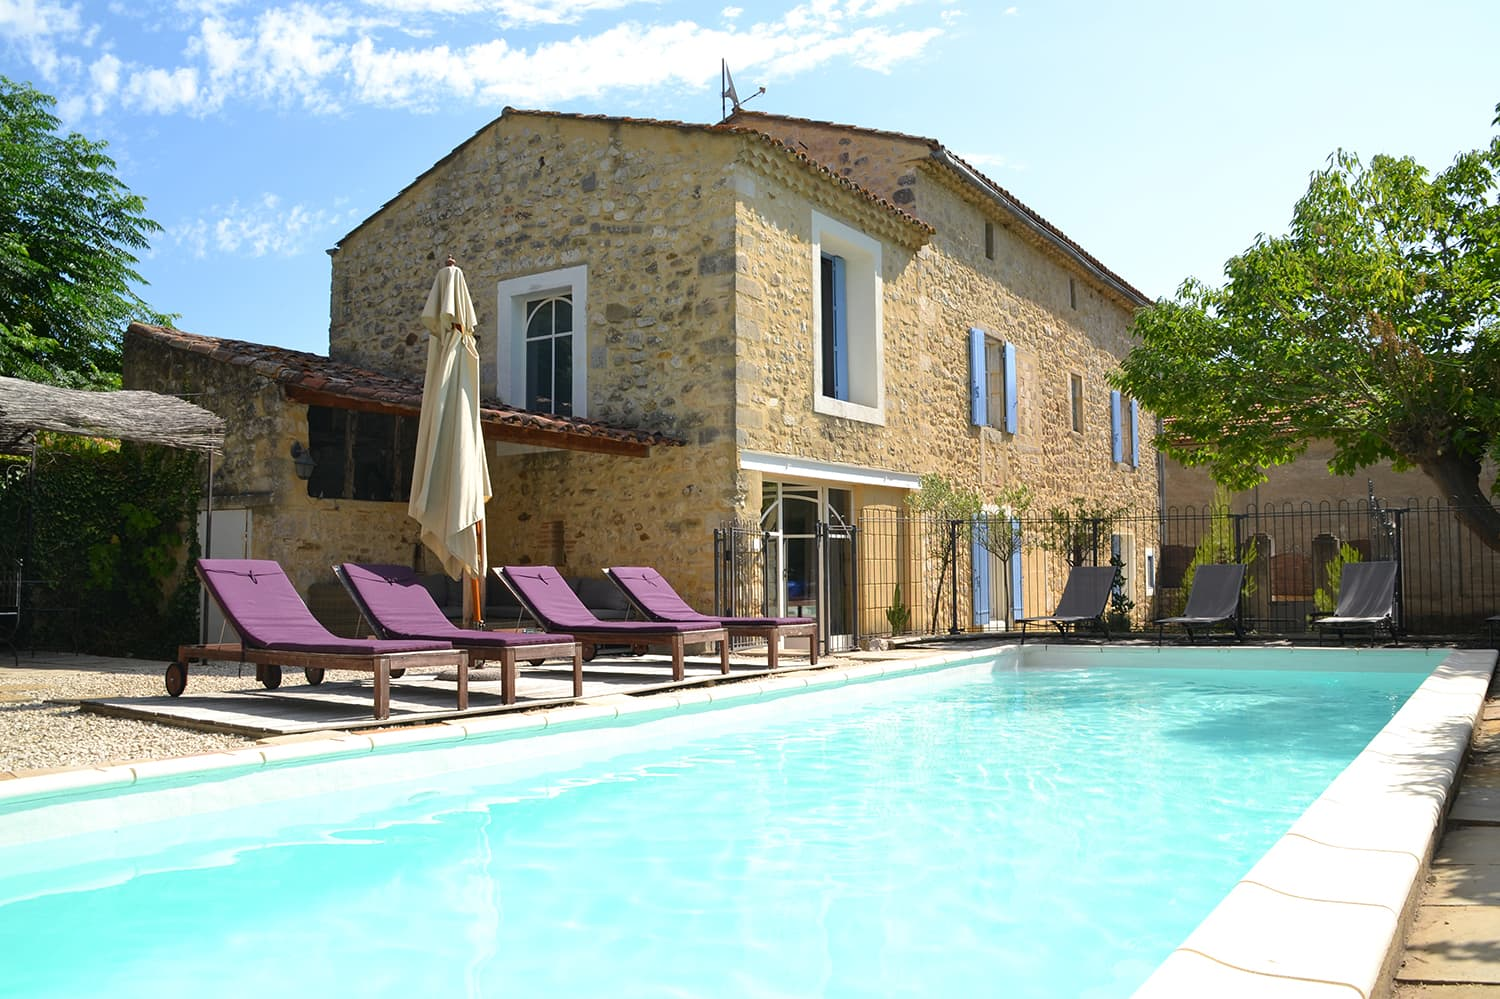 Holiday home with private pool in Occitanie